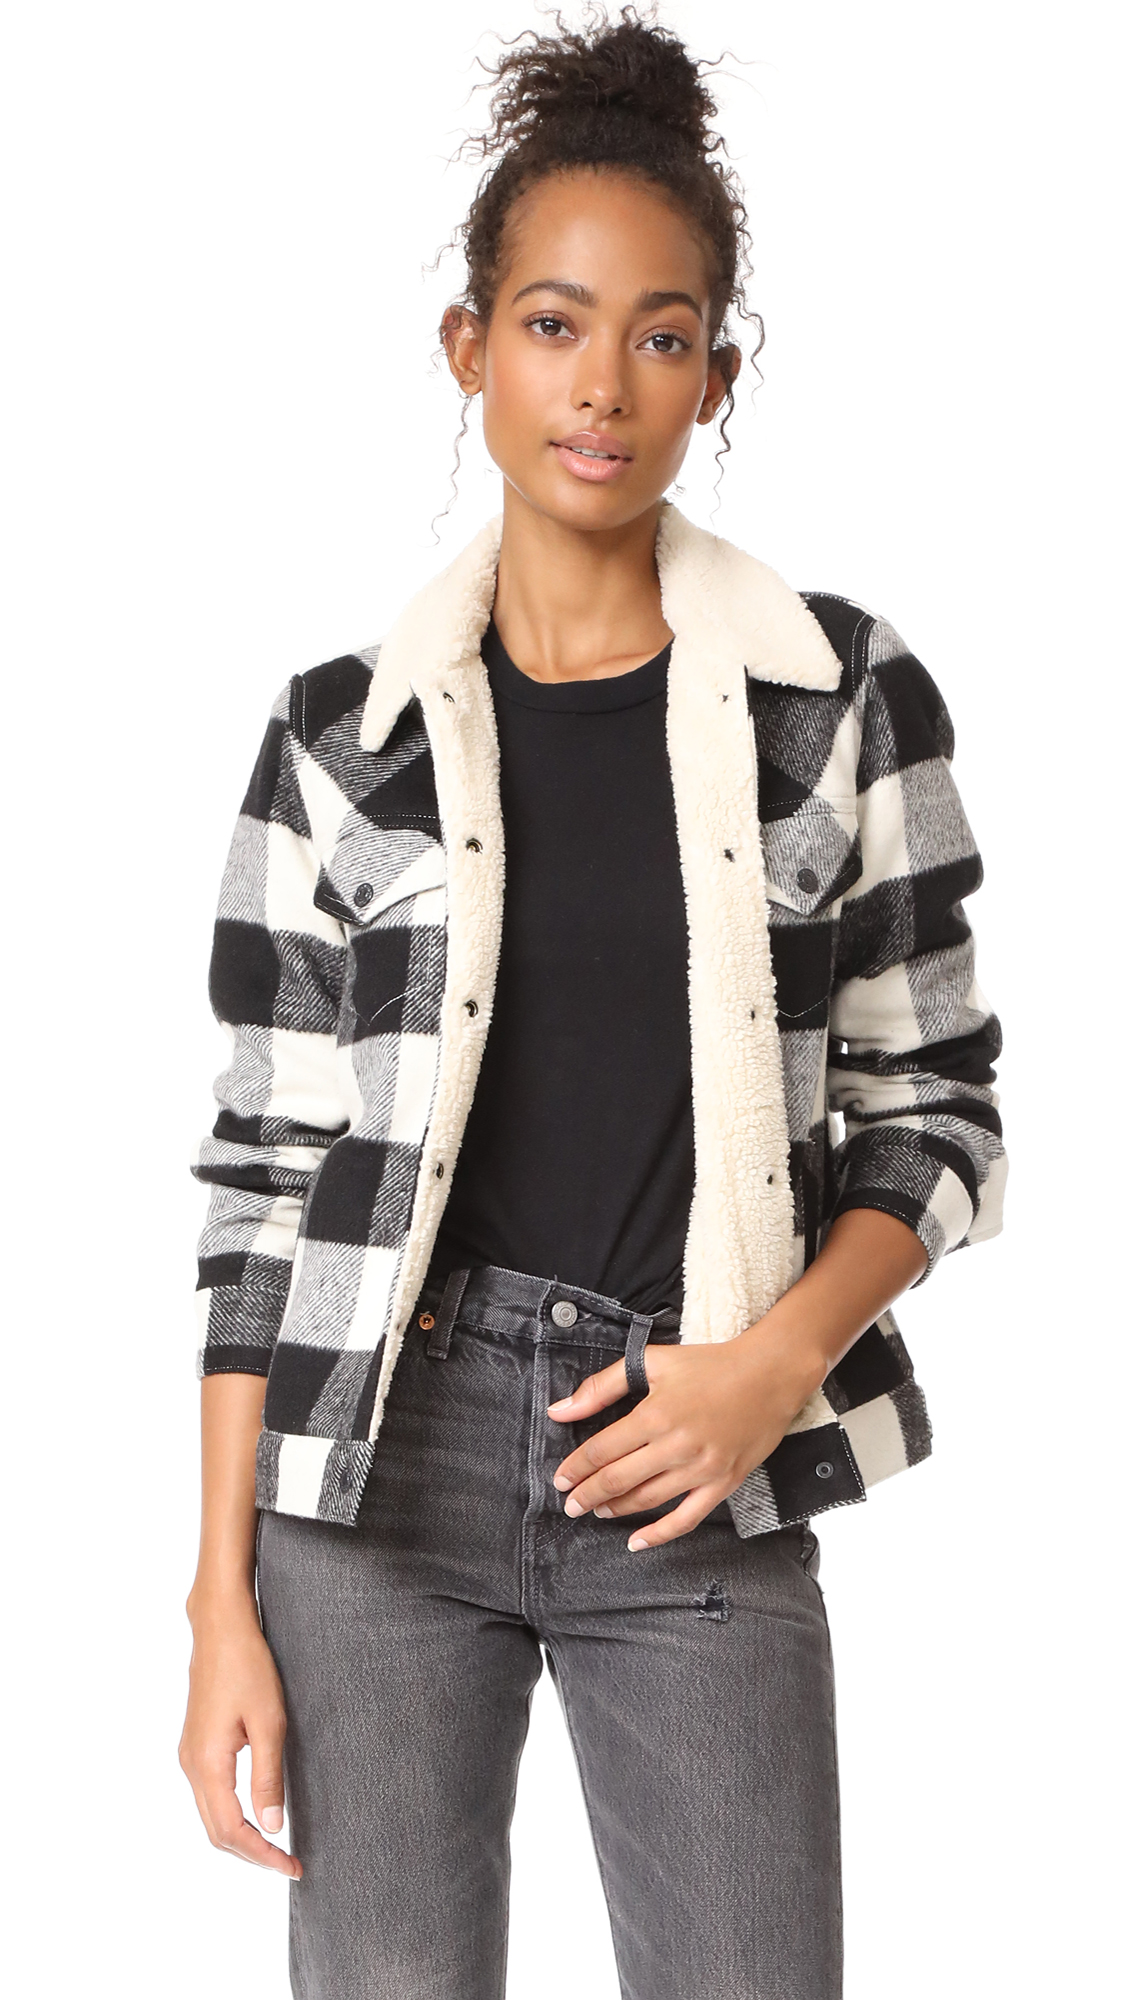 Levis Wool Boyfriend Trucker Jacket - Oatmeal/Black Plaid